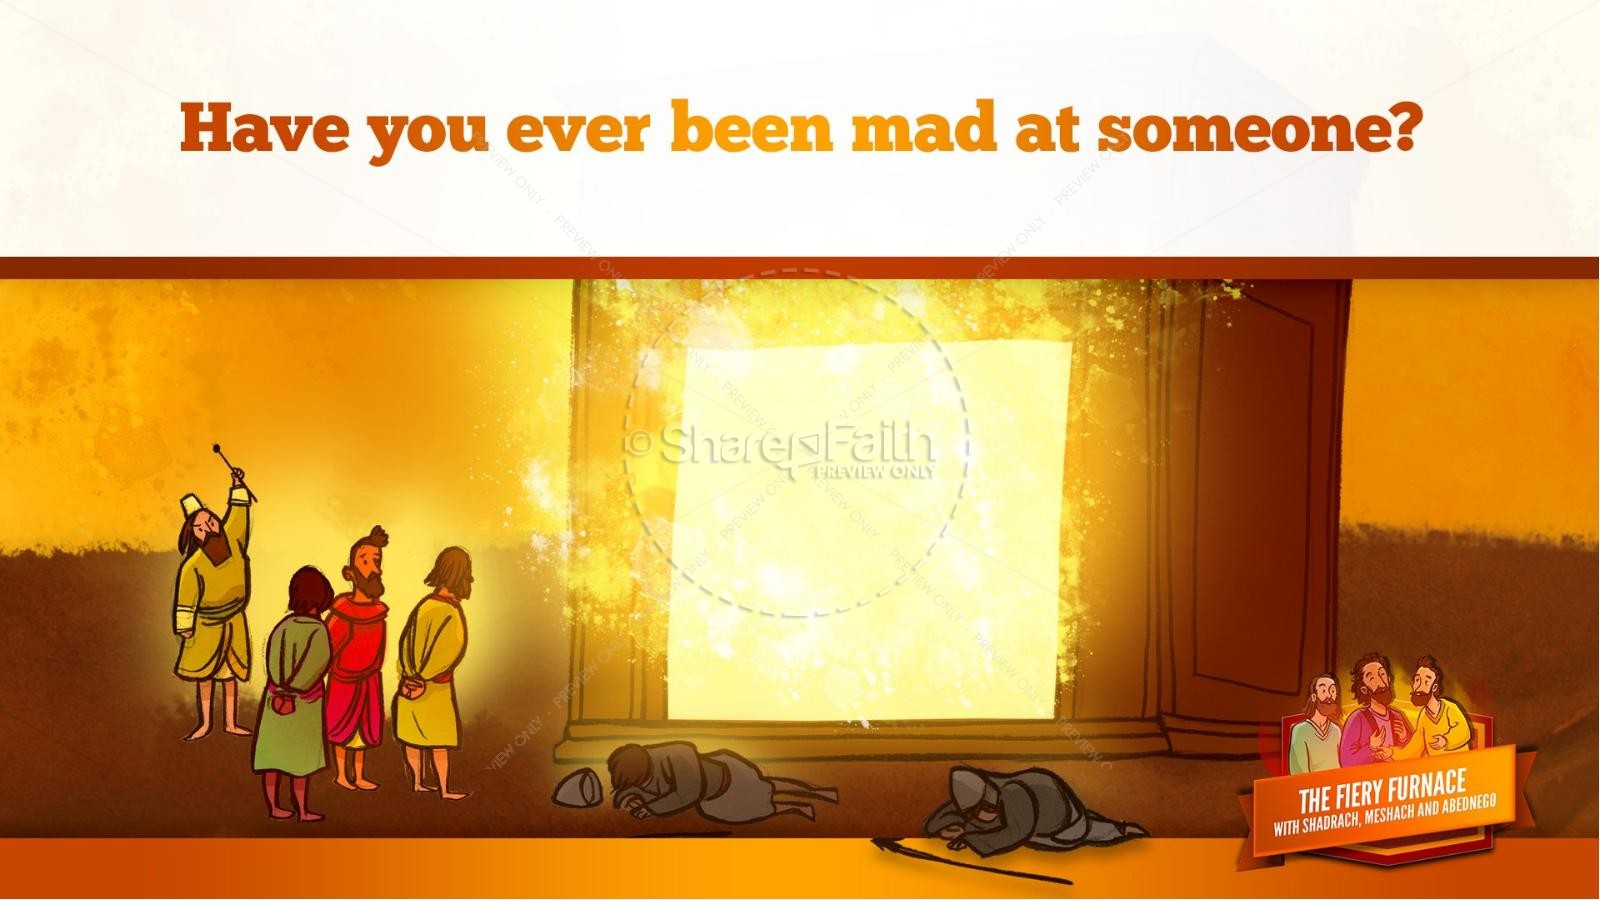 The Fiery Furnace with Shadrach, Meshach and Abednego Kids Bible Story | slide 50